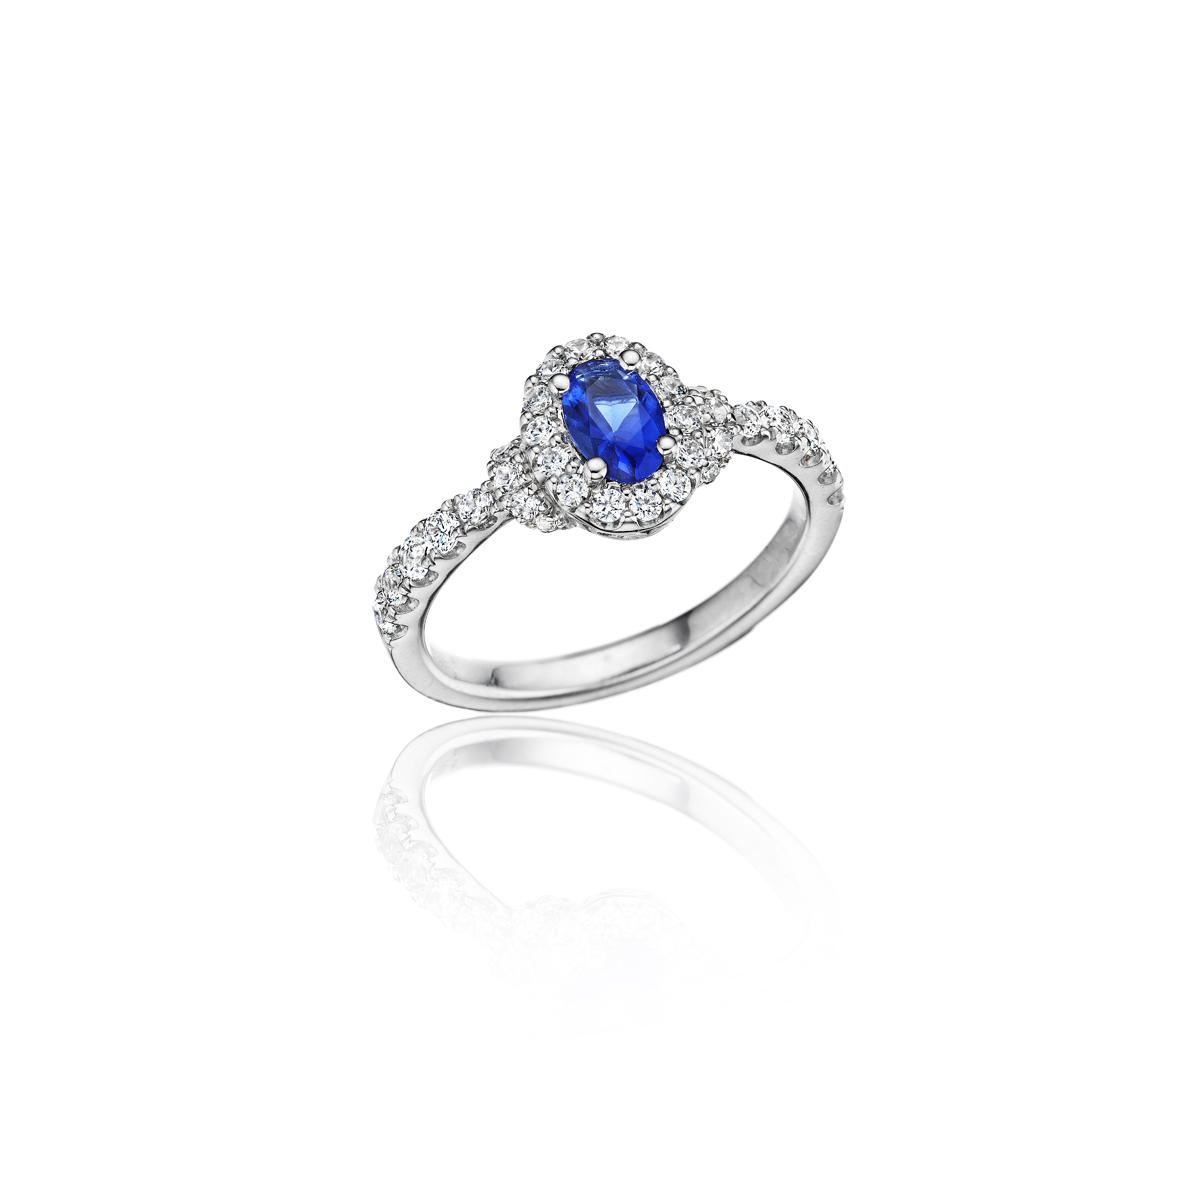 Pure Perfection Dainty Sapphire and Diamond Ring - This pure perfection dainty sapphire and diamond ring comes in a variety of material types like 14k white gold, yellow gold, rose gold and can be customized with your jeweler. Fana diamond earrings are perfect for that special woman in your life.